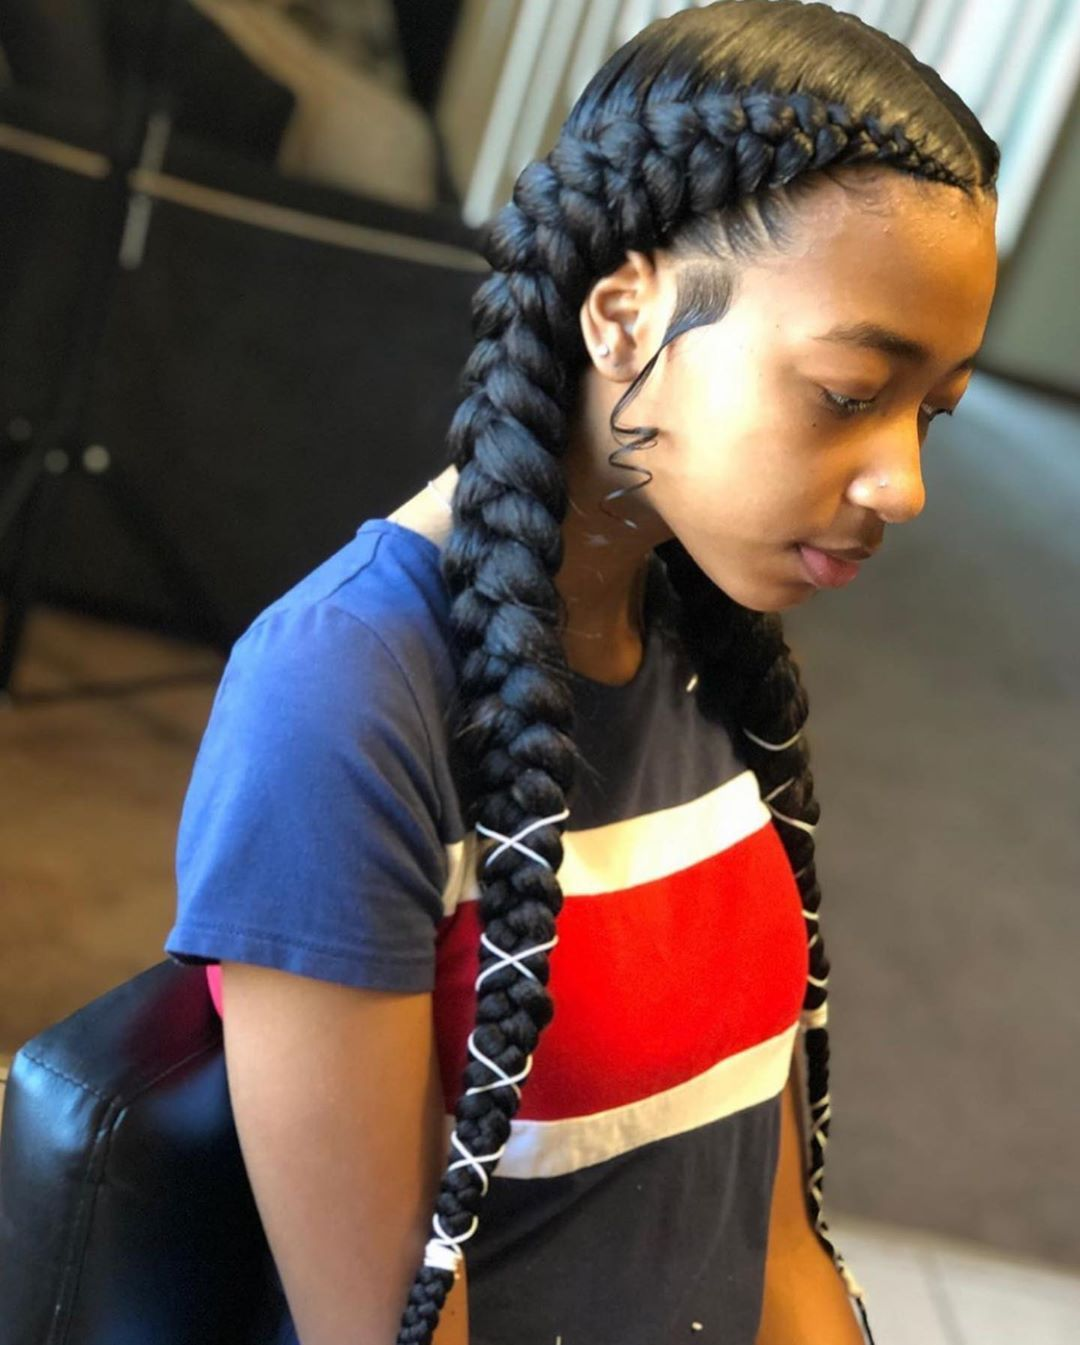 40 New Braids Hairstyles 2019 Female Trends You Should Copy New Braided Hairstyles Two Braid Hairstyles Braided Hairstyles